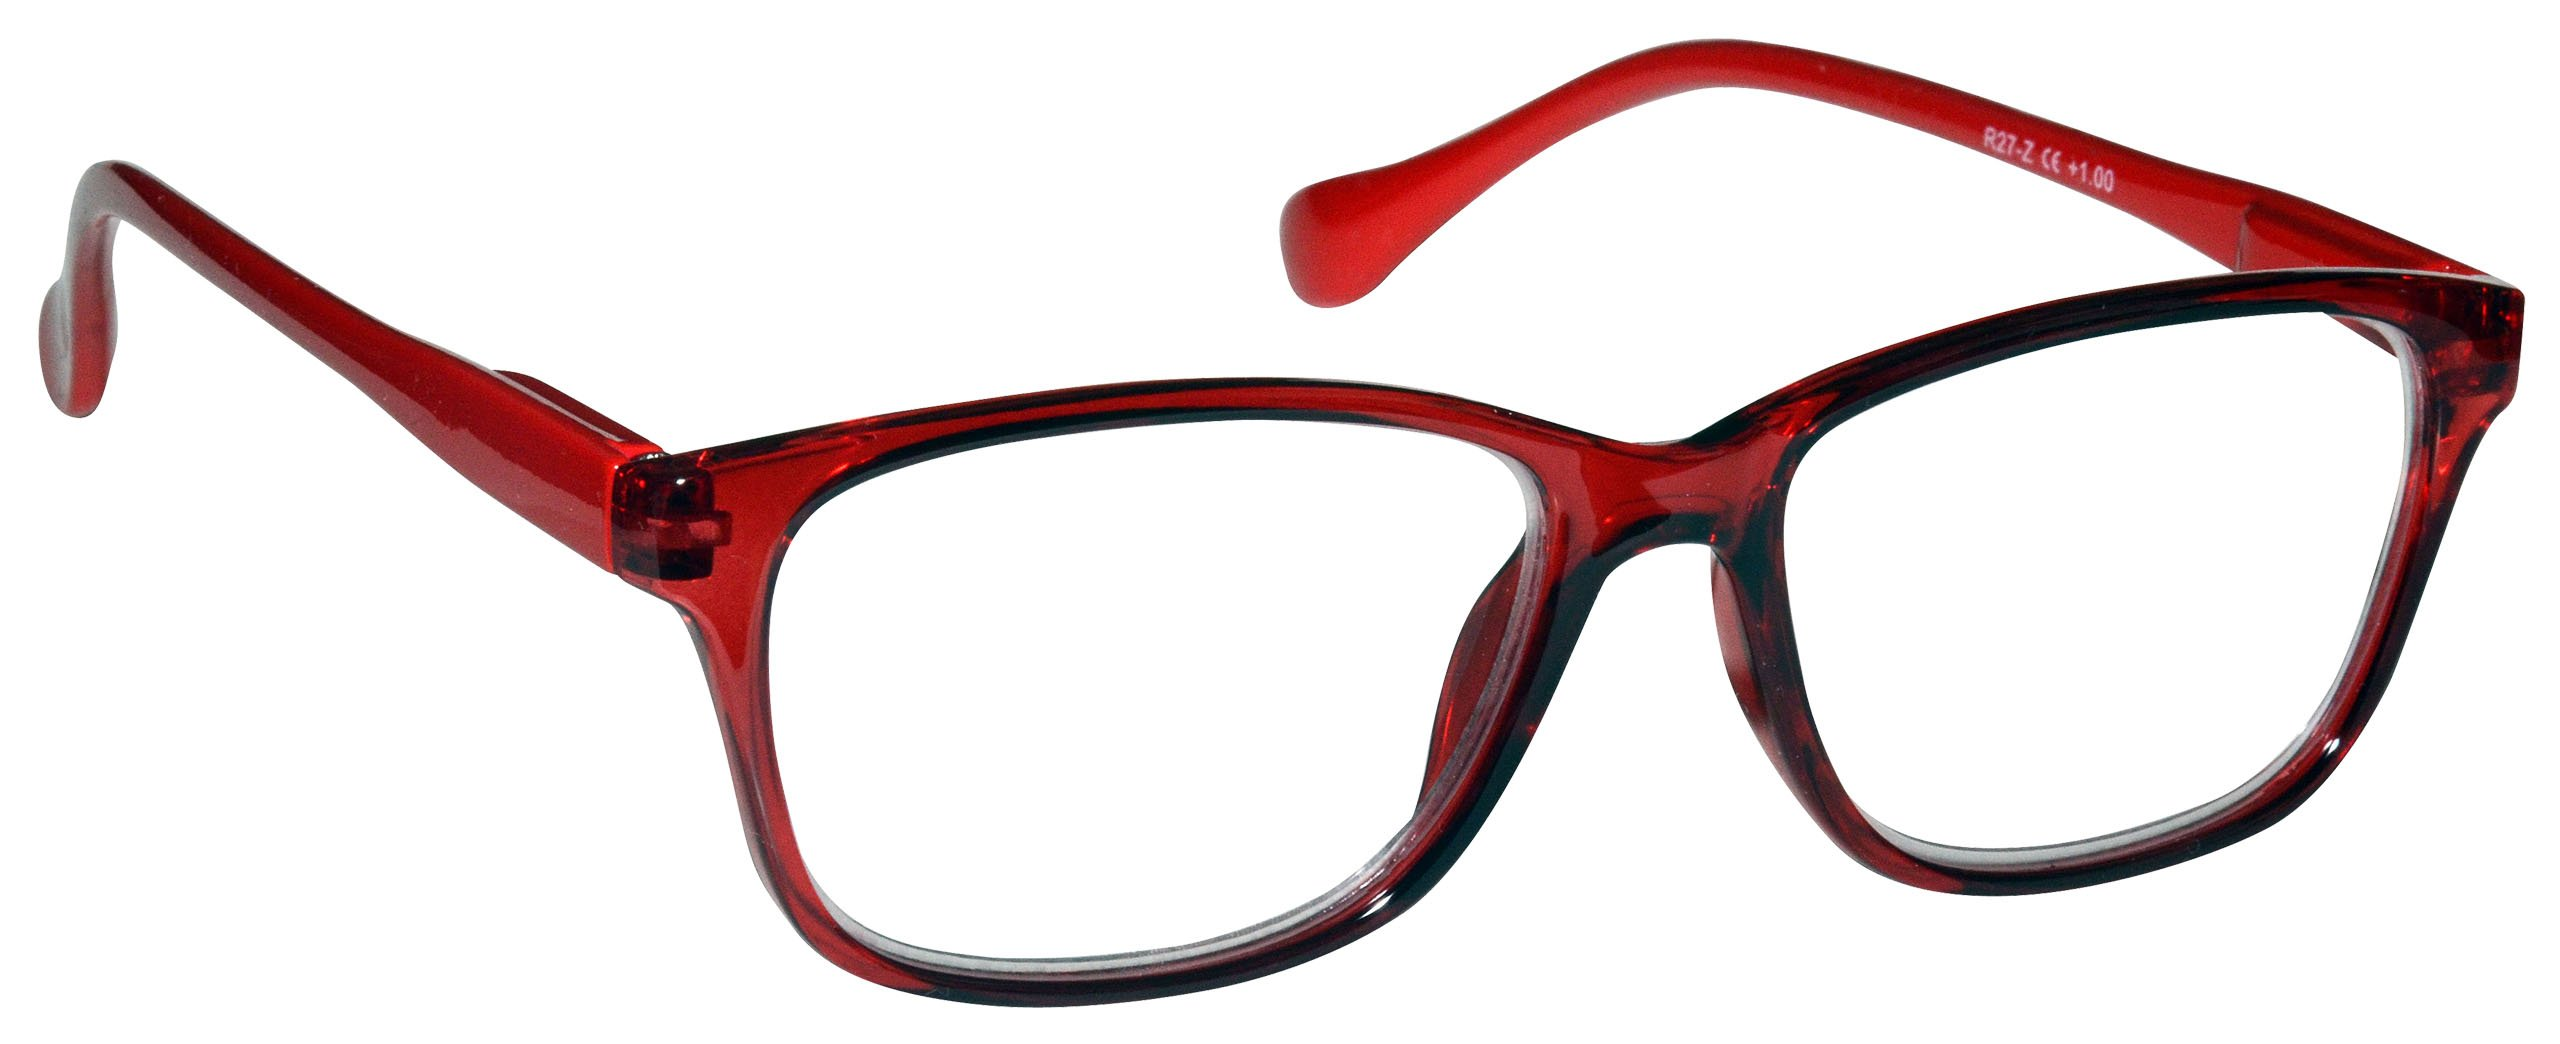 5f895f1ac0a9 The Reading Glasses Company Red Lightweight Readers Designer Style Mens  Womens Spring Hinges R27-Z